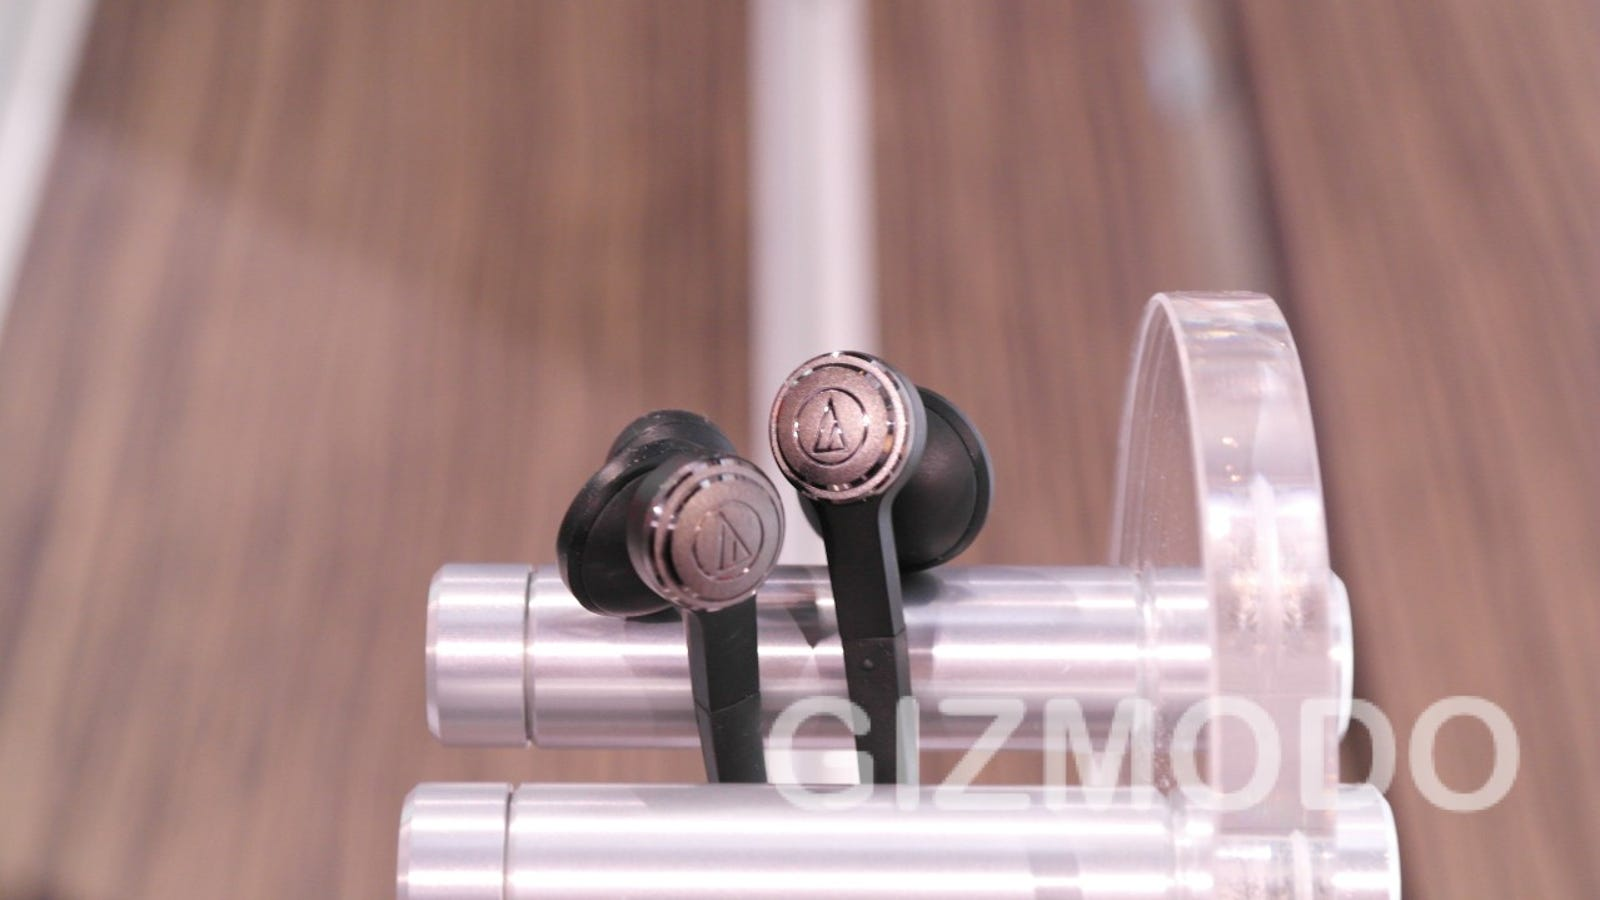 philips wireless headphones metalix